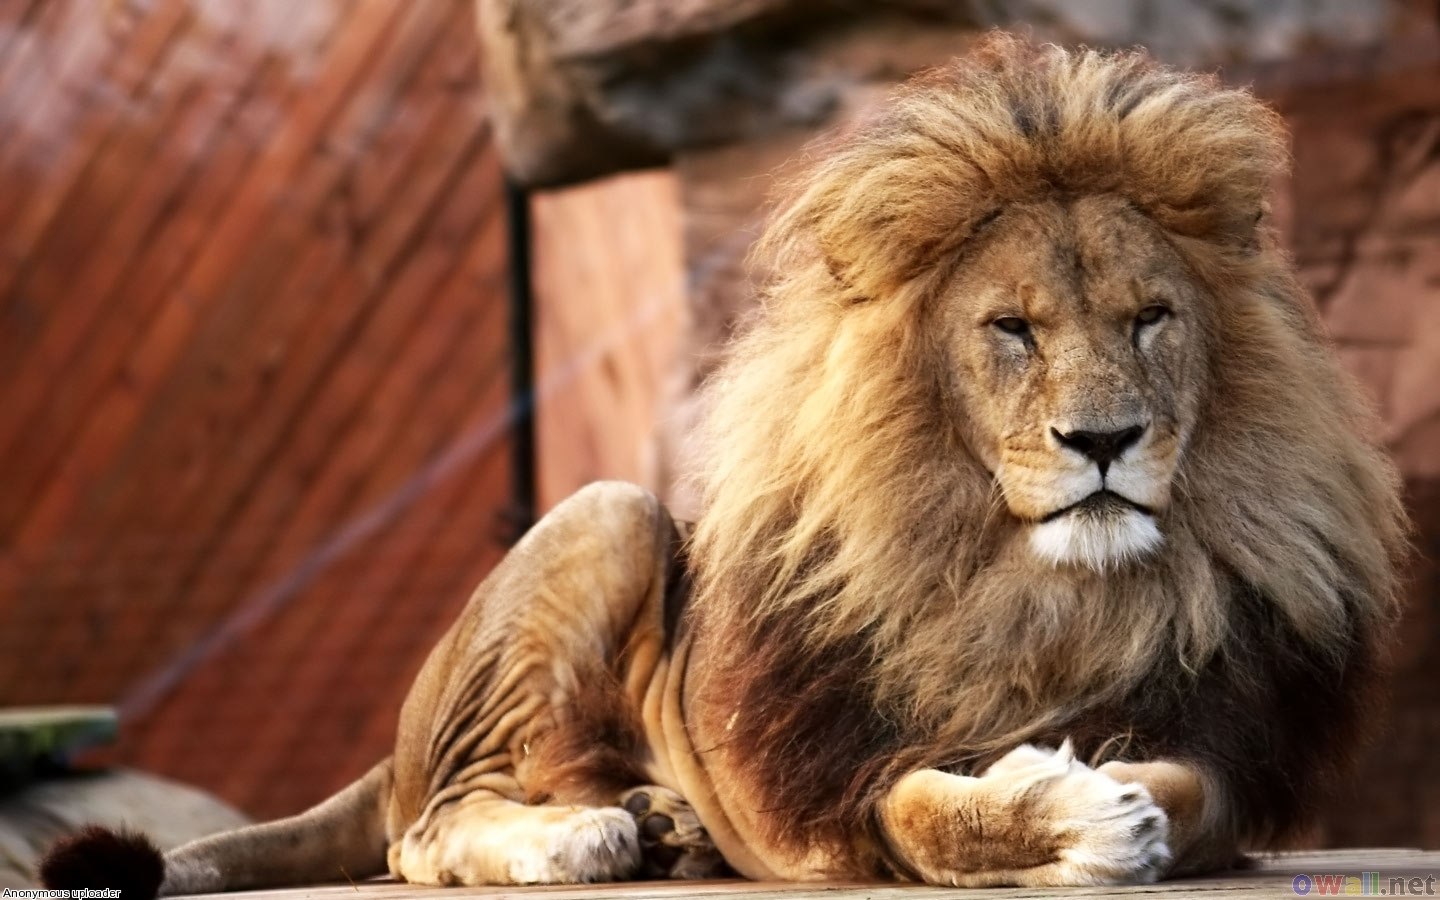 Male Lion Wallpapers | Animals Library